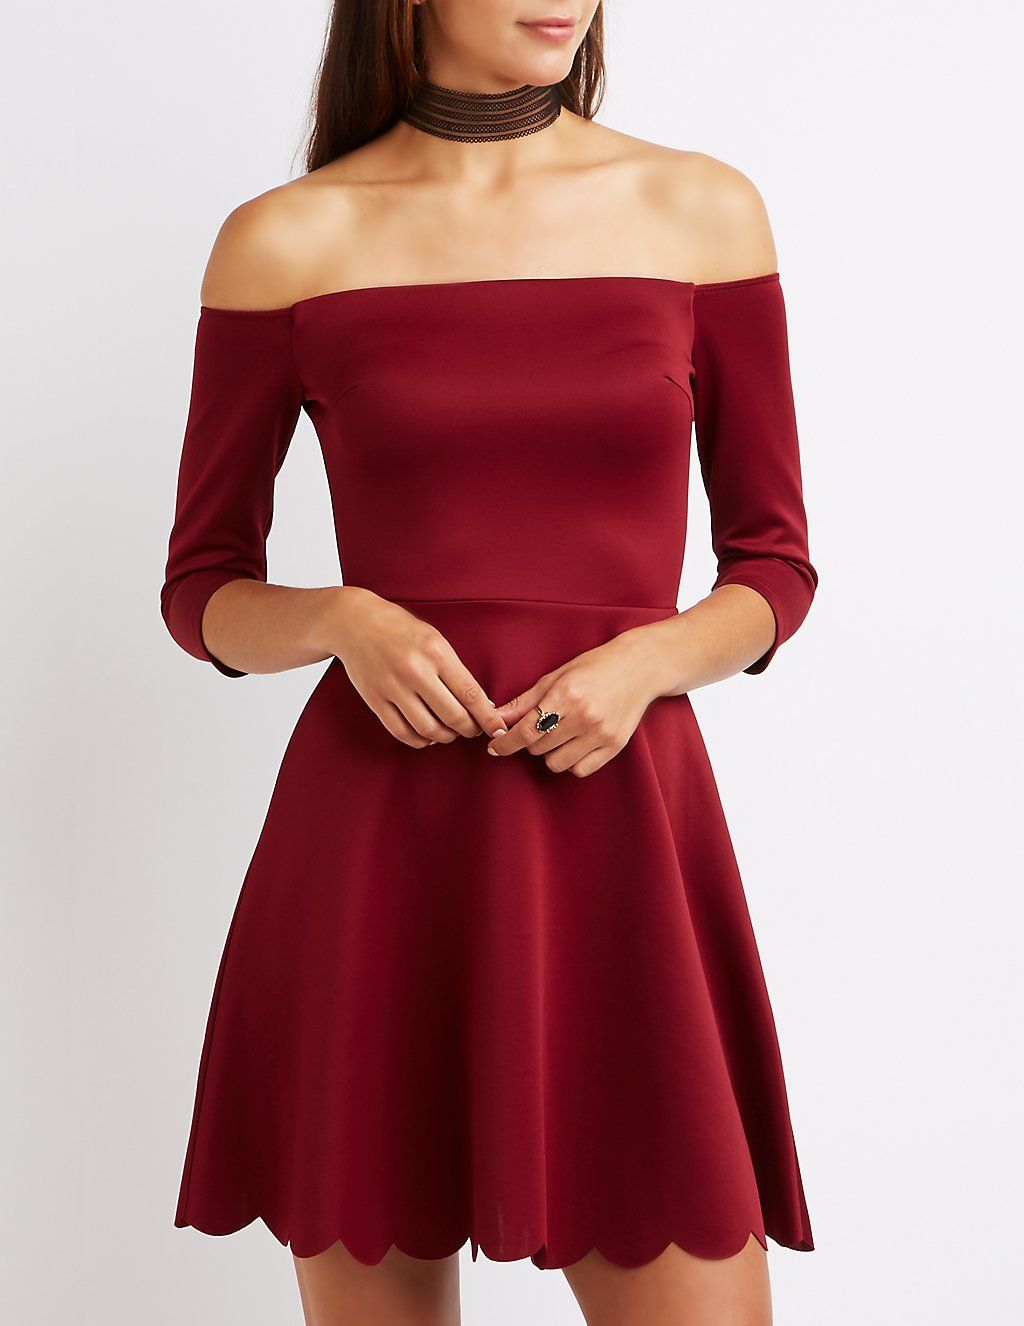 Off-The-Shoulder Scalloped Skater Dress | Charlotte Russe | Dresses ...